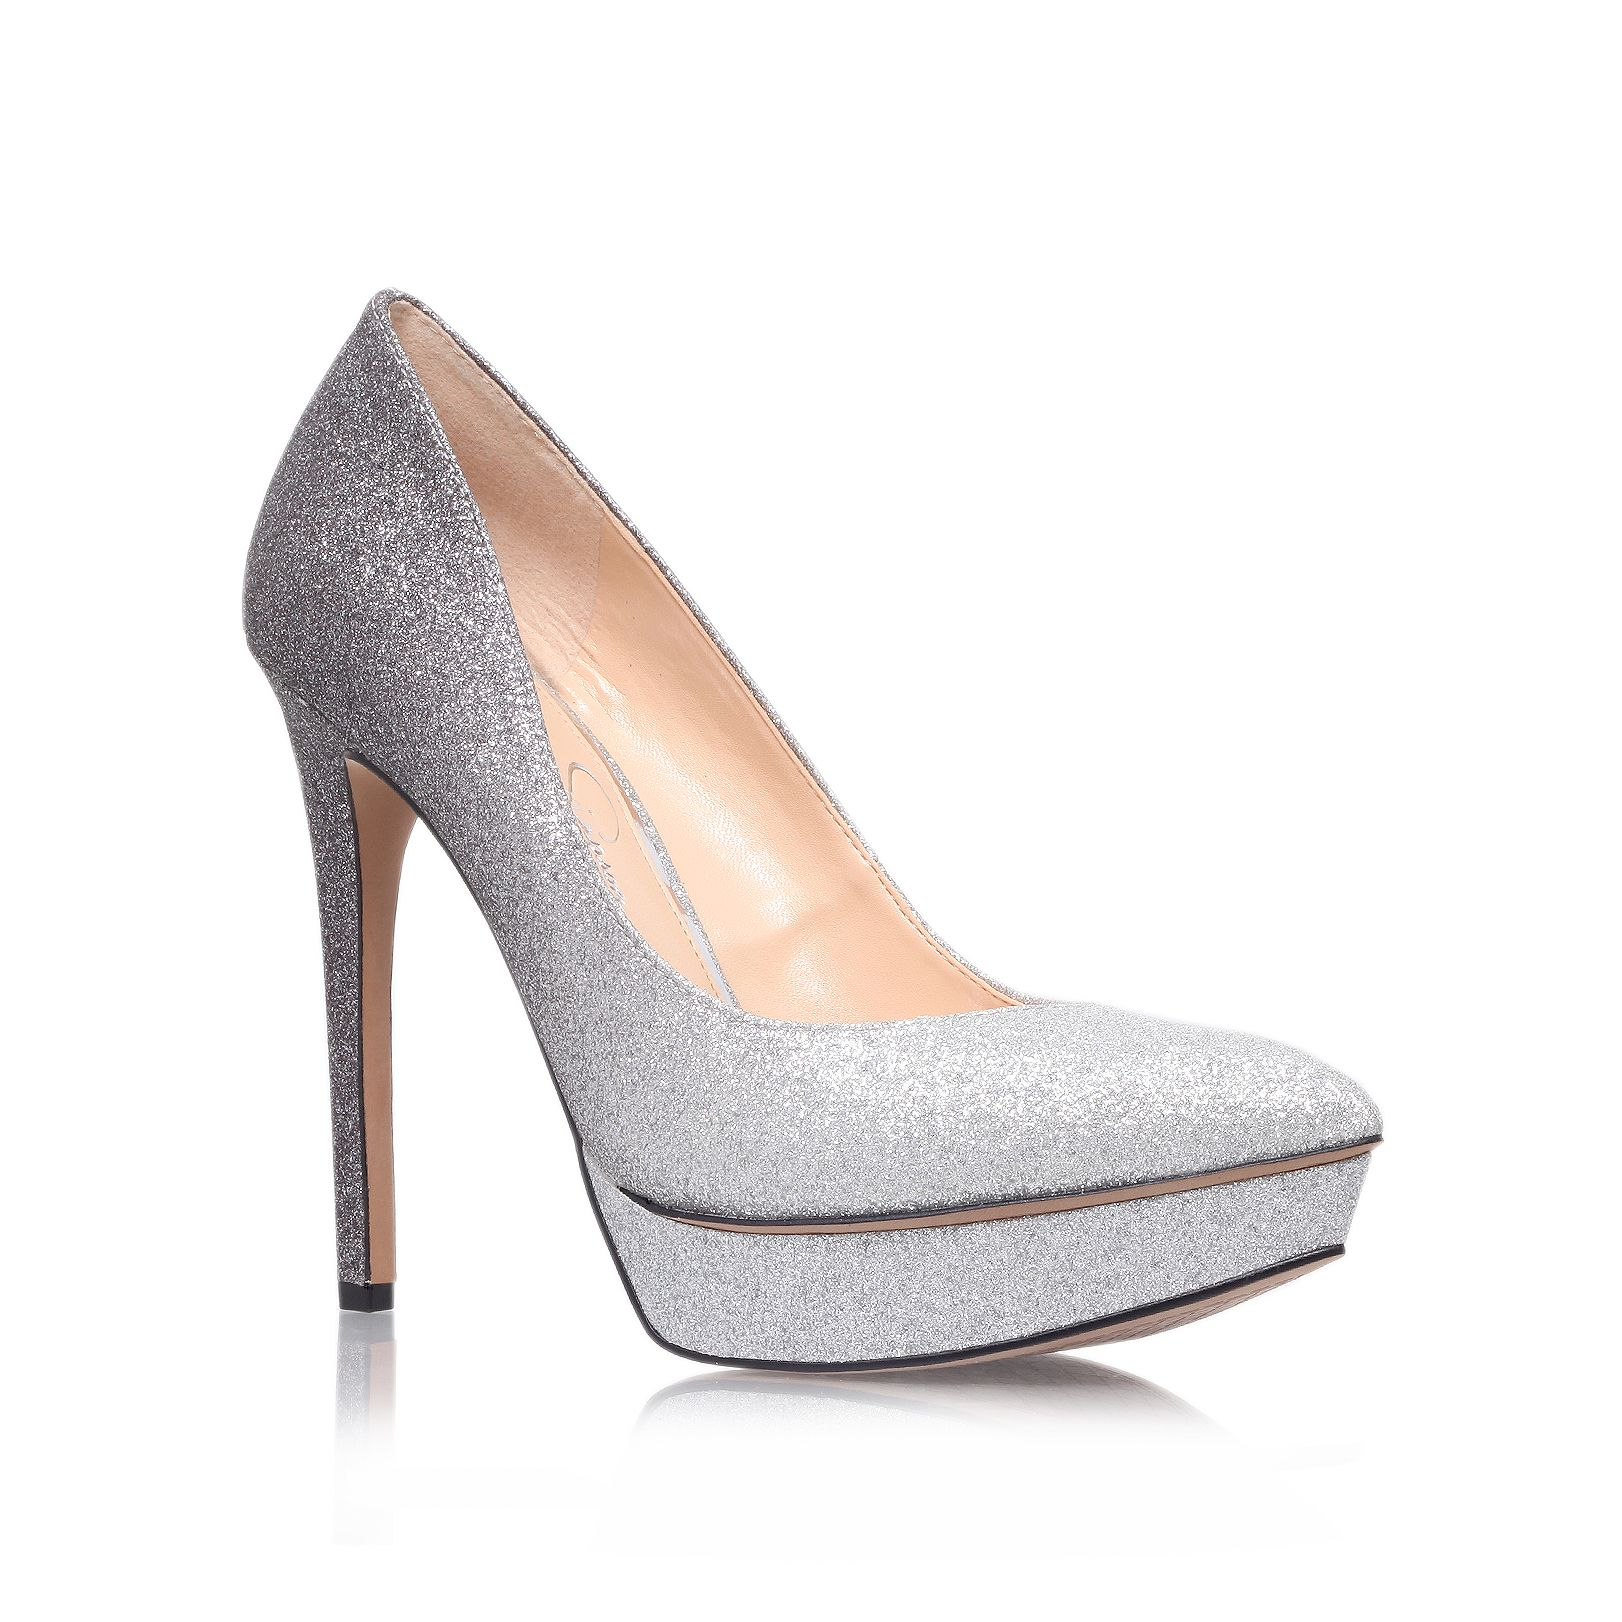 Venisse high heeled court shoe